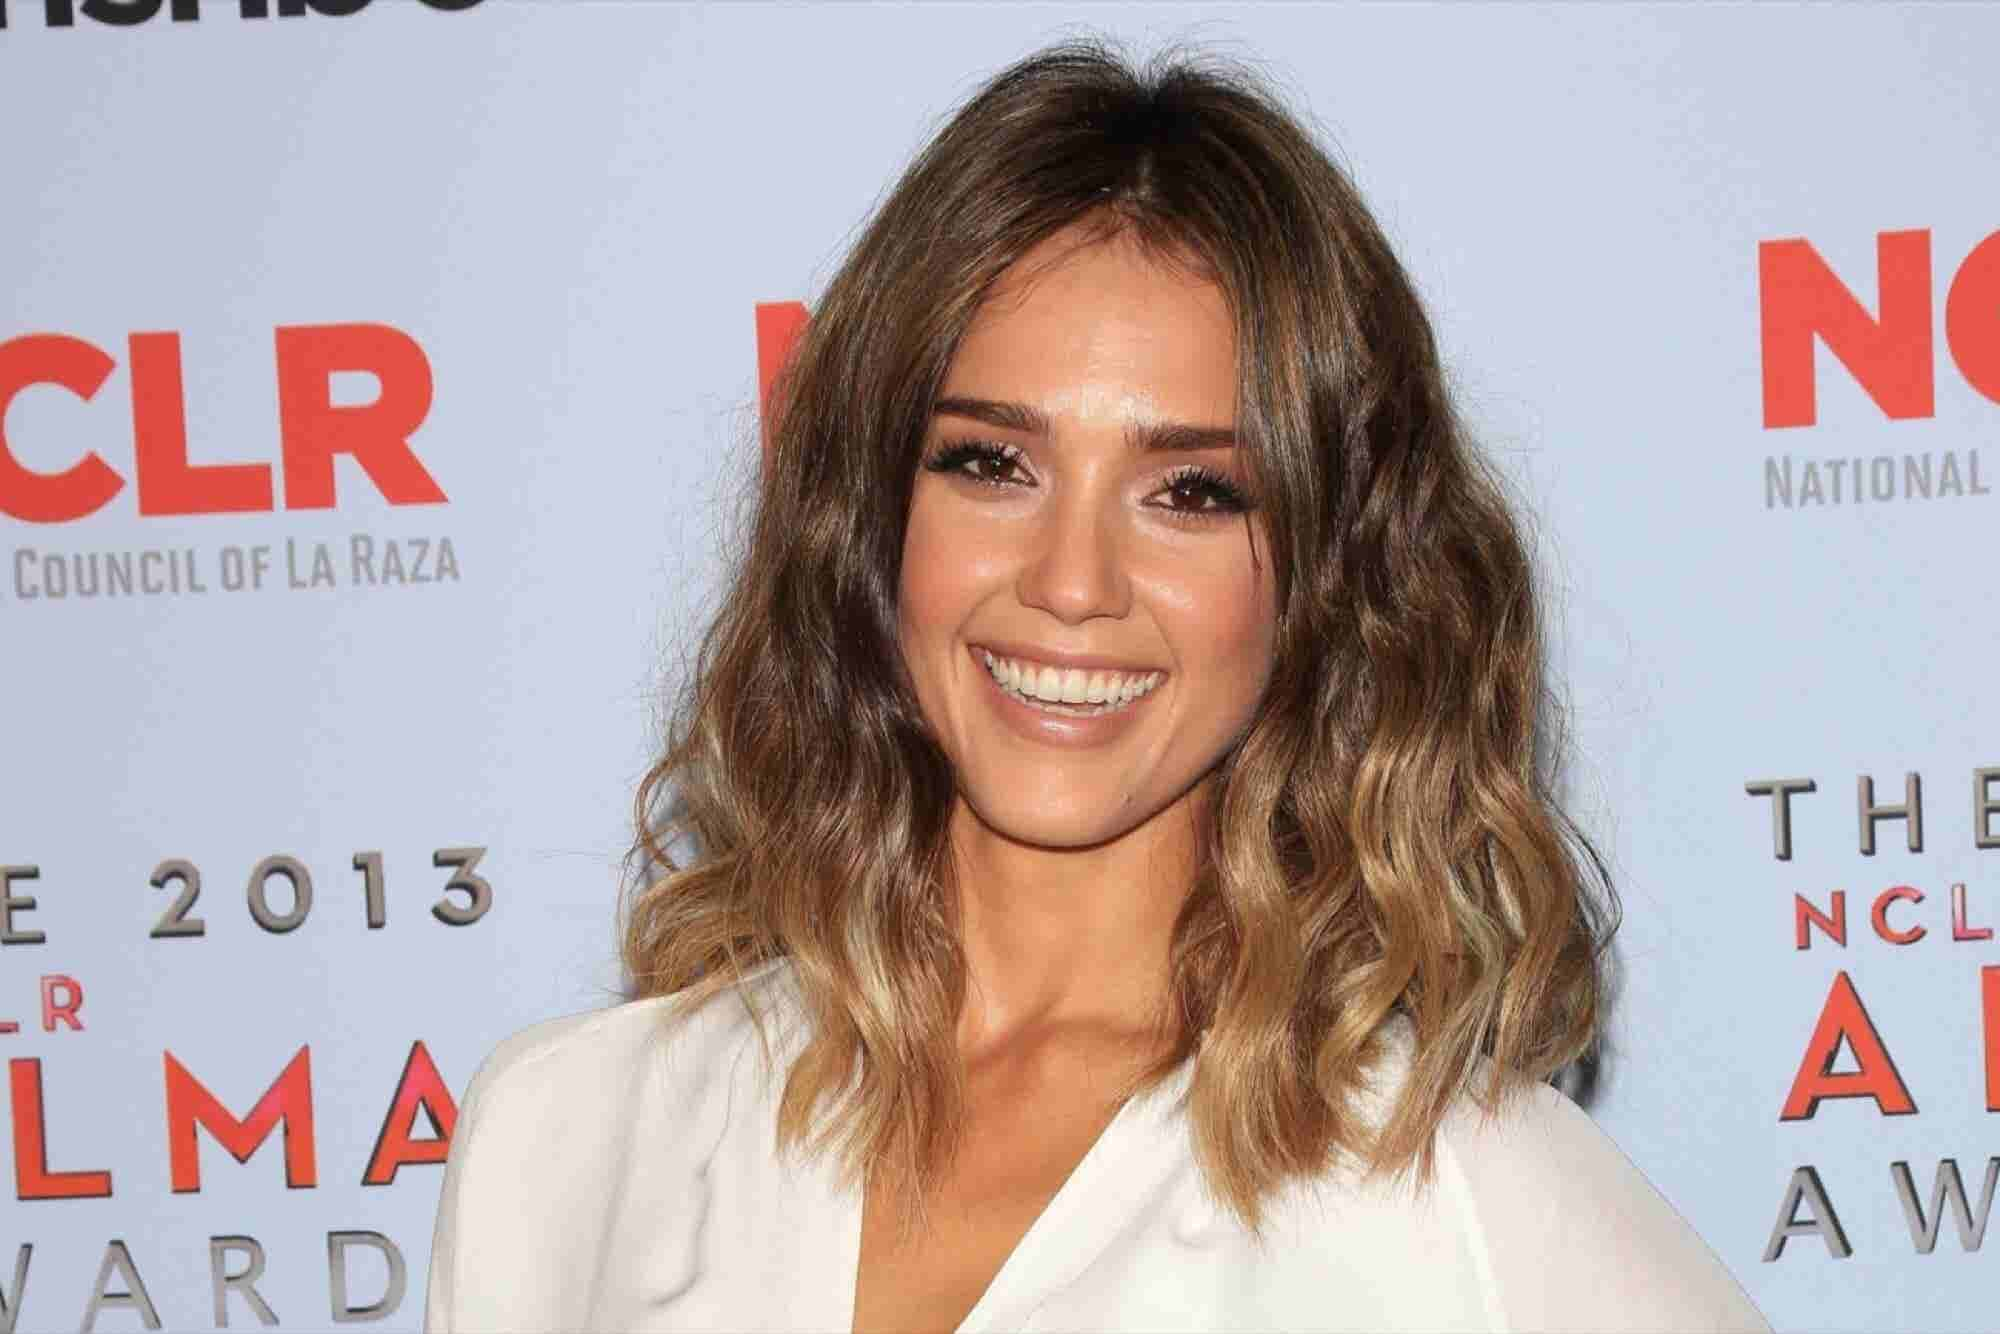 Jessica Alba's Honest Co. Rejects Report on Detergent Ingredients